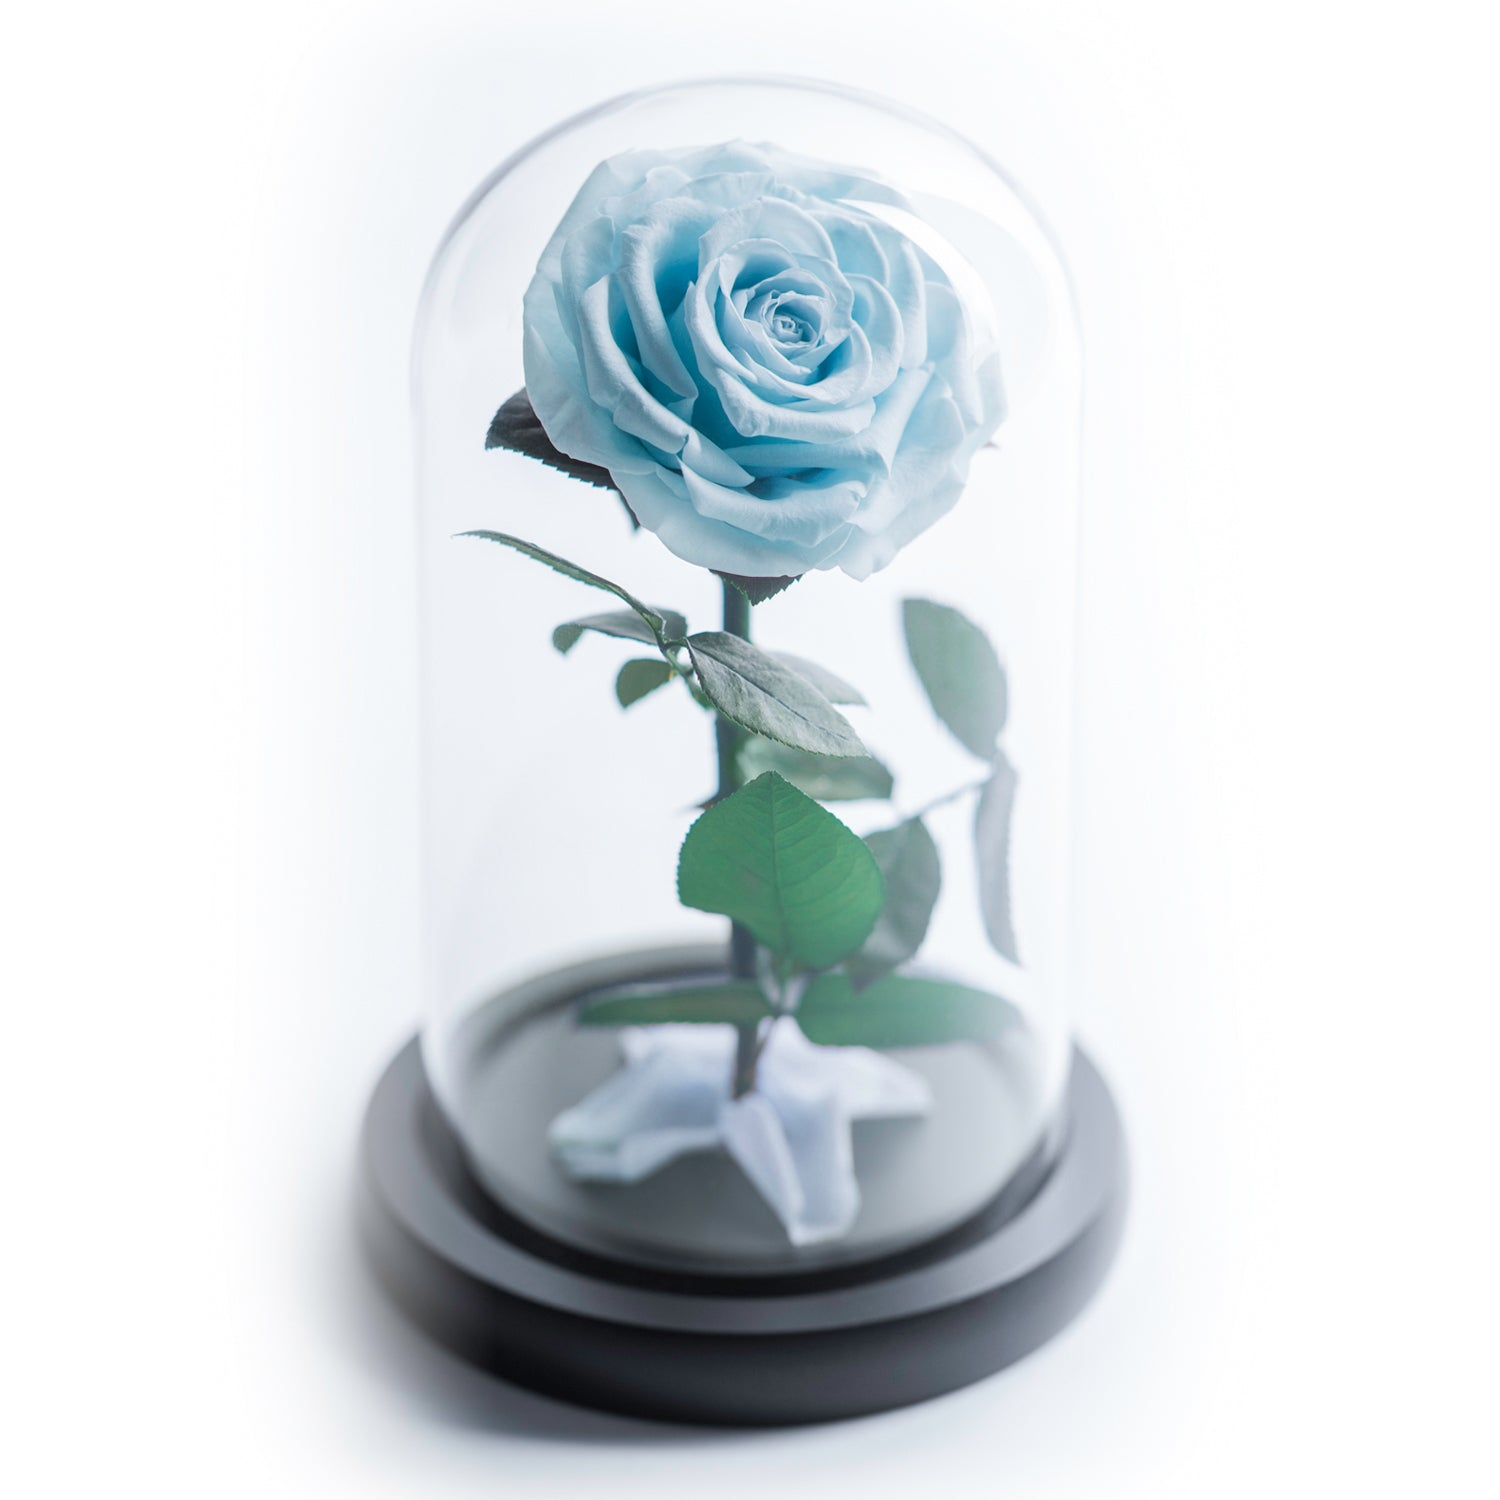 The Beauty and the Beast contains one blue color eternity rose, picked at the point of perfection and preserved to last at least one year. Rose in small glass dome